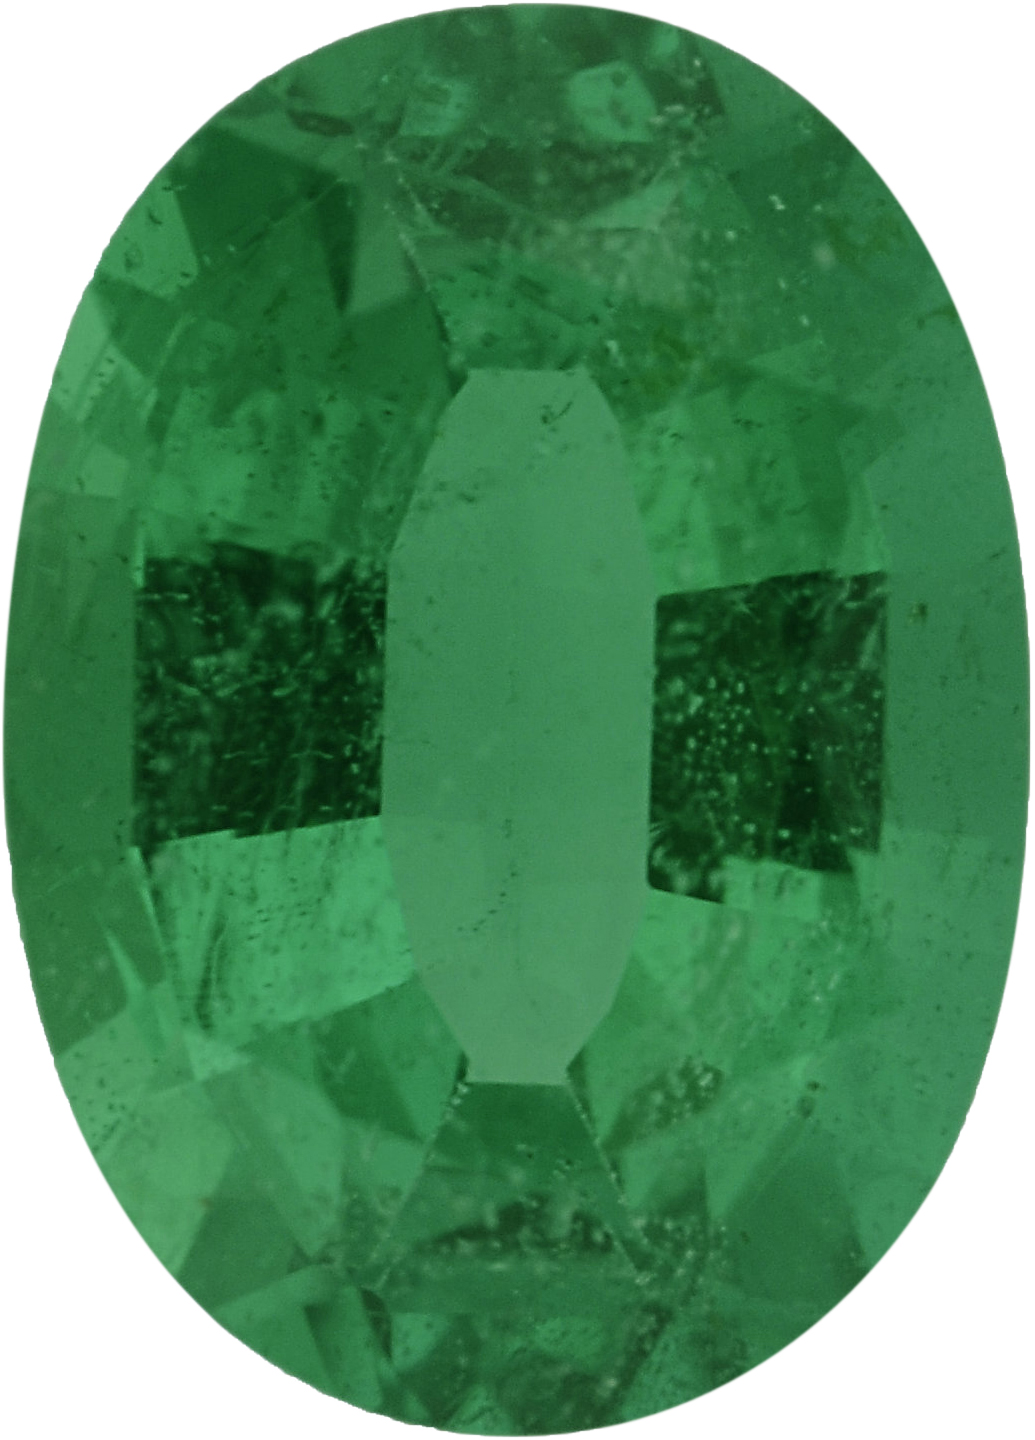 7.13 x 5.13 mm, Emerald Loose Gemstone in Oval Cut, 0.73 carats